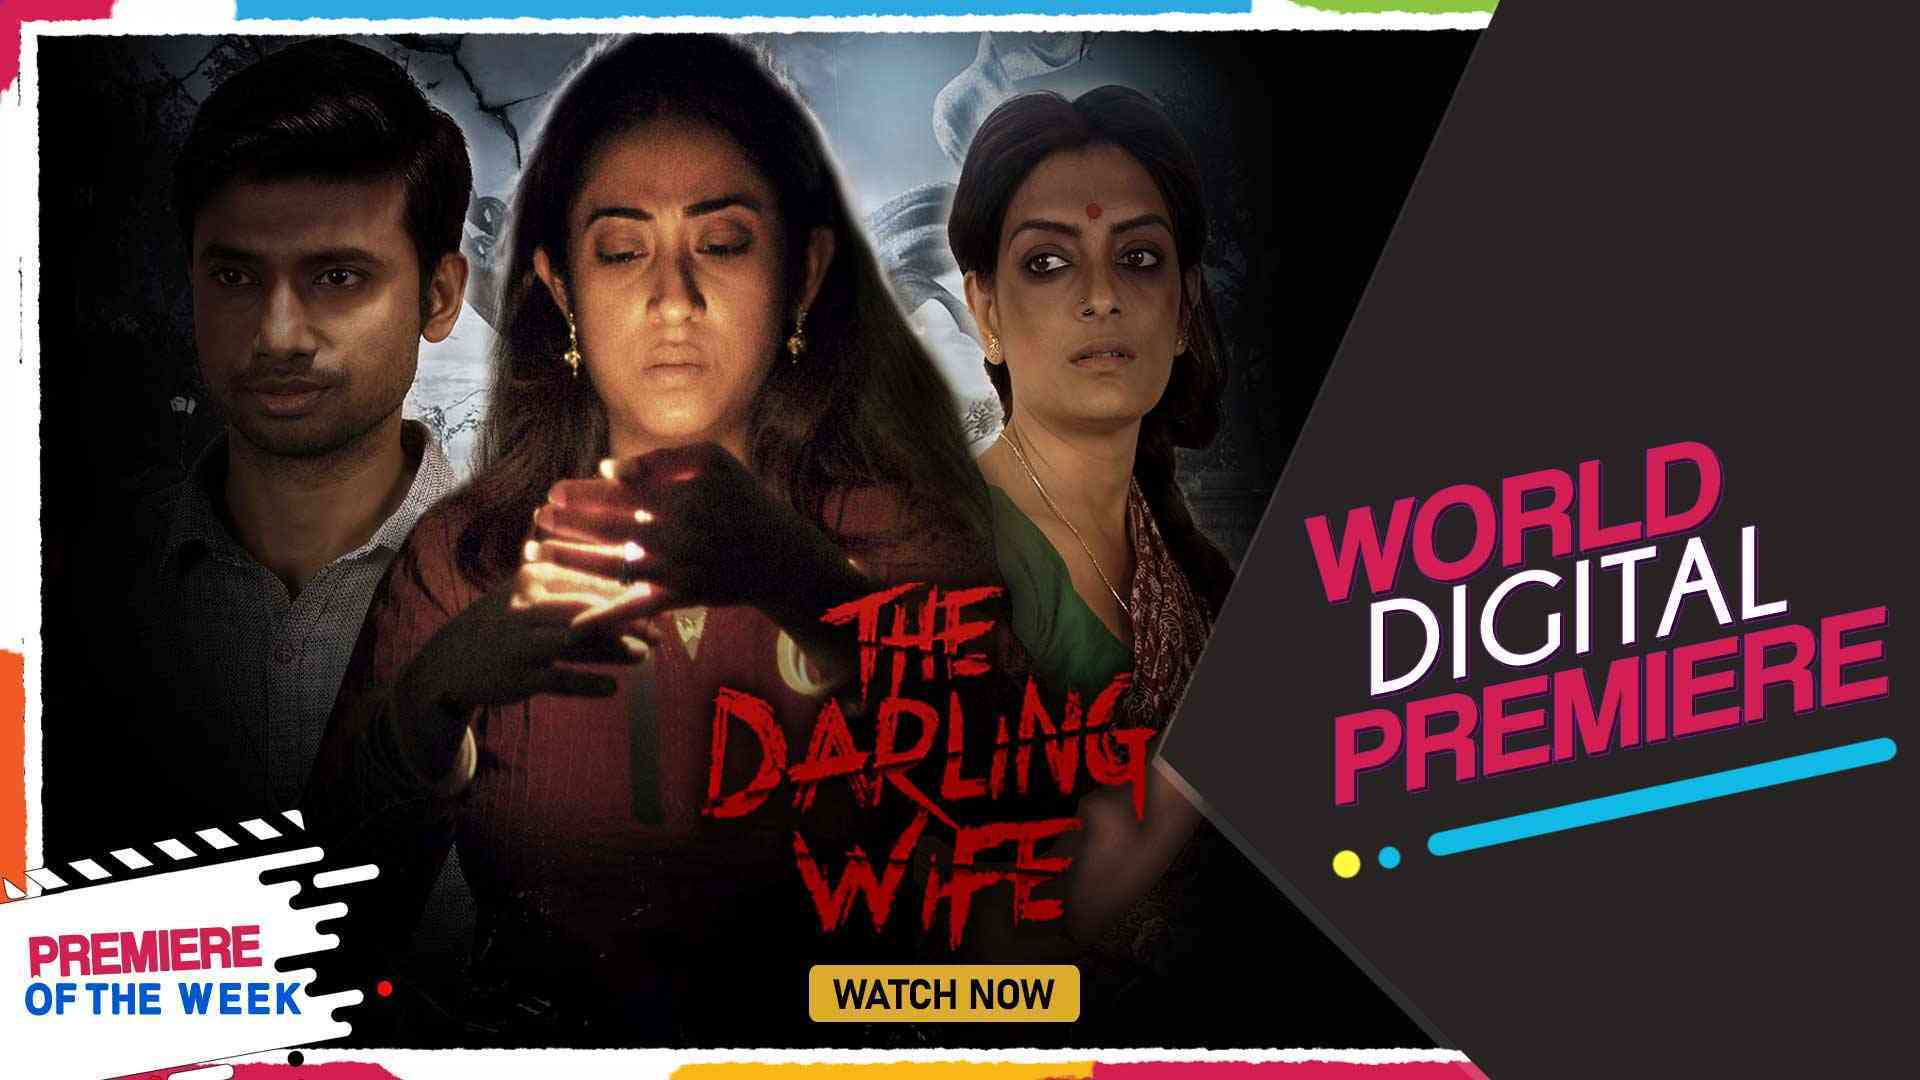 The Darling Wife (2021)